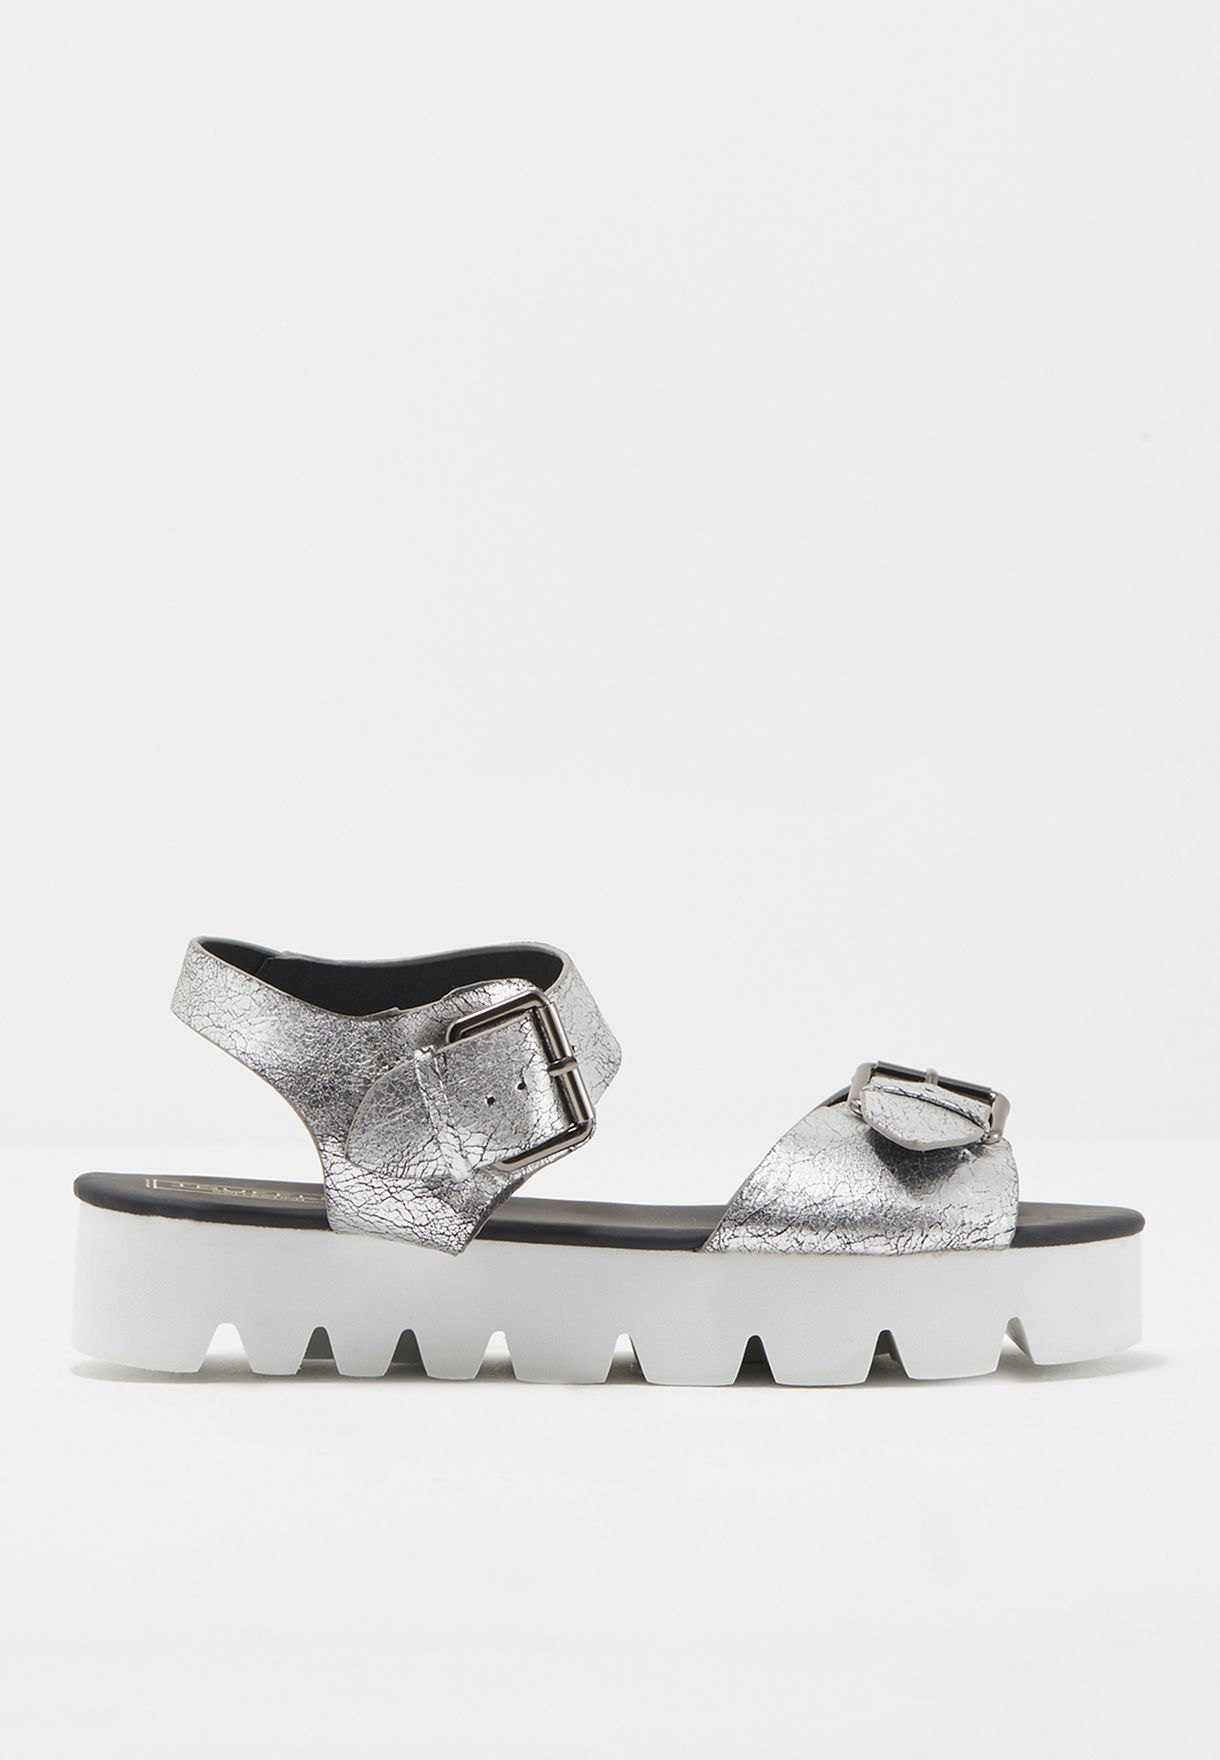 Maxi Buckle With Track Sole